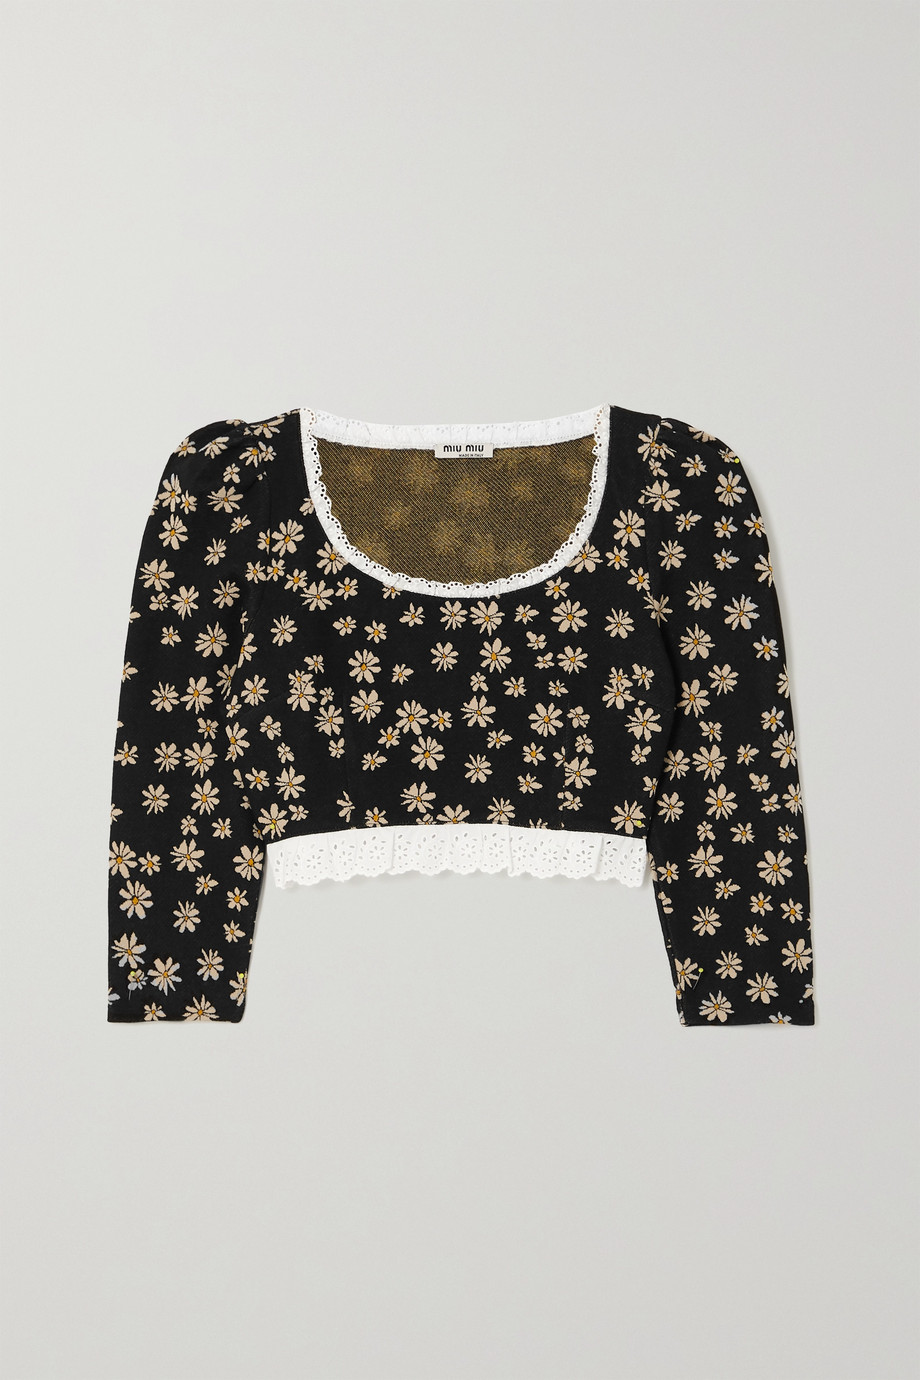 Miu Miu Cropped lace-trimmed floral jacquard-knit top